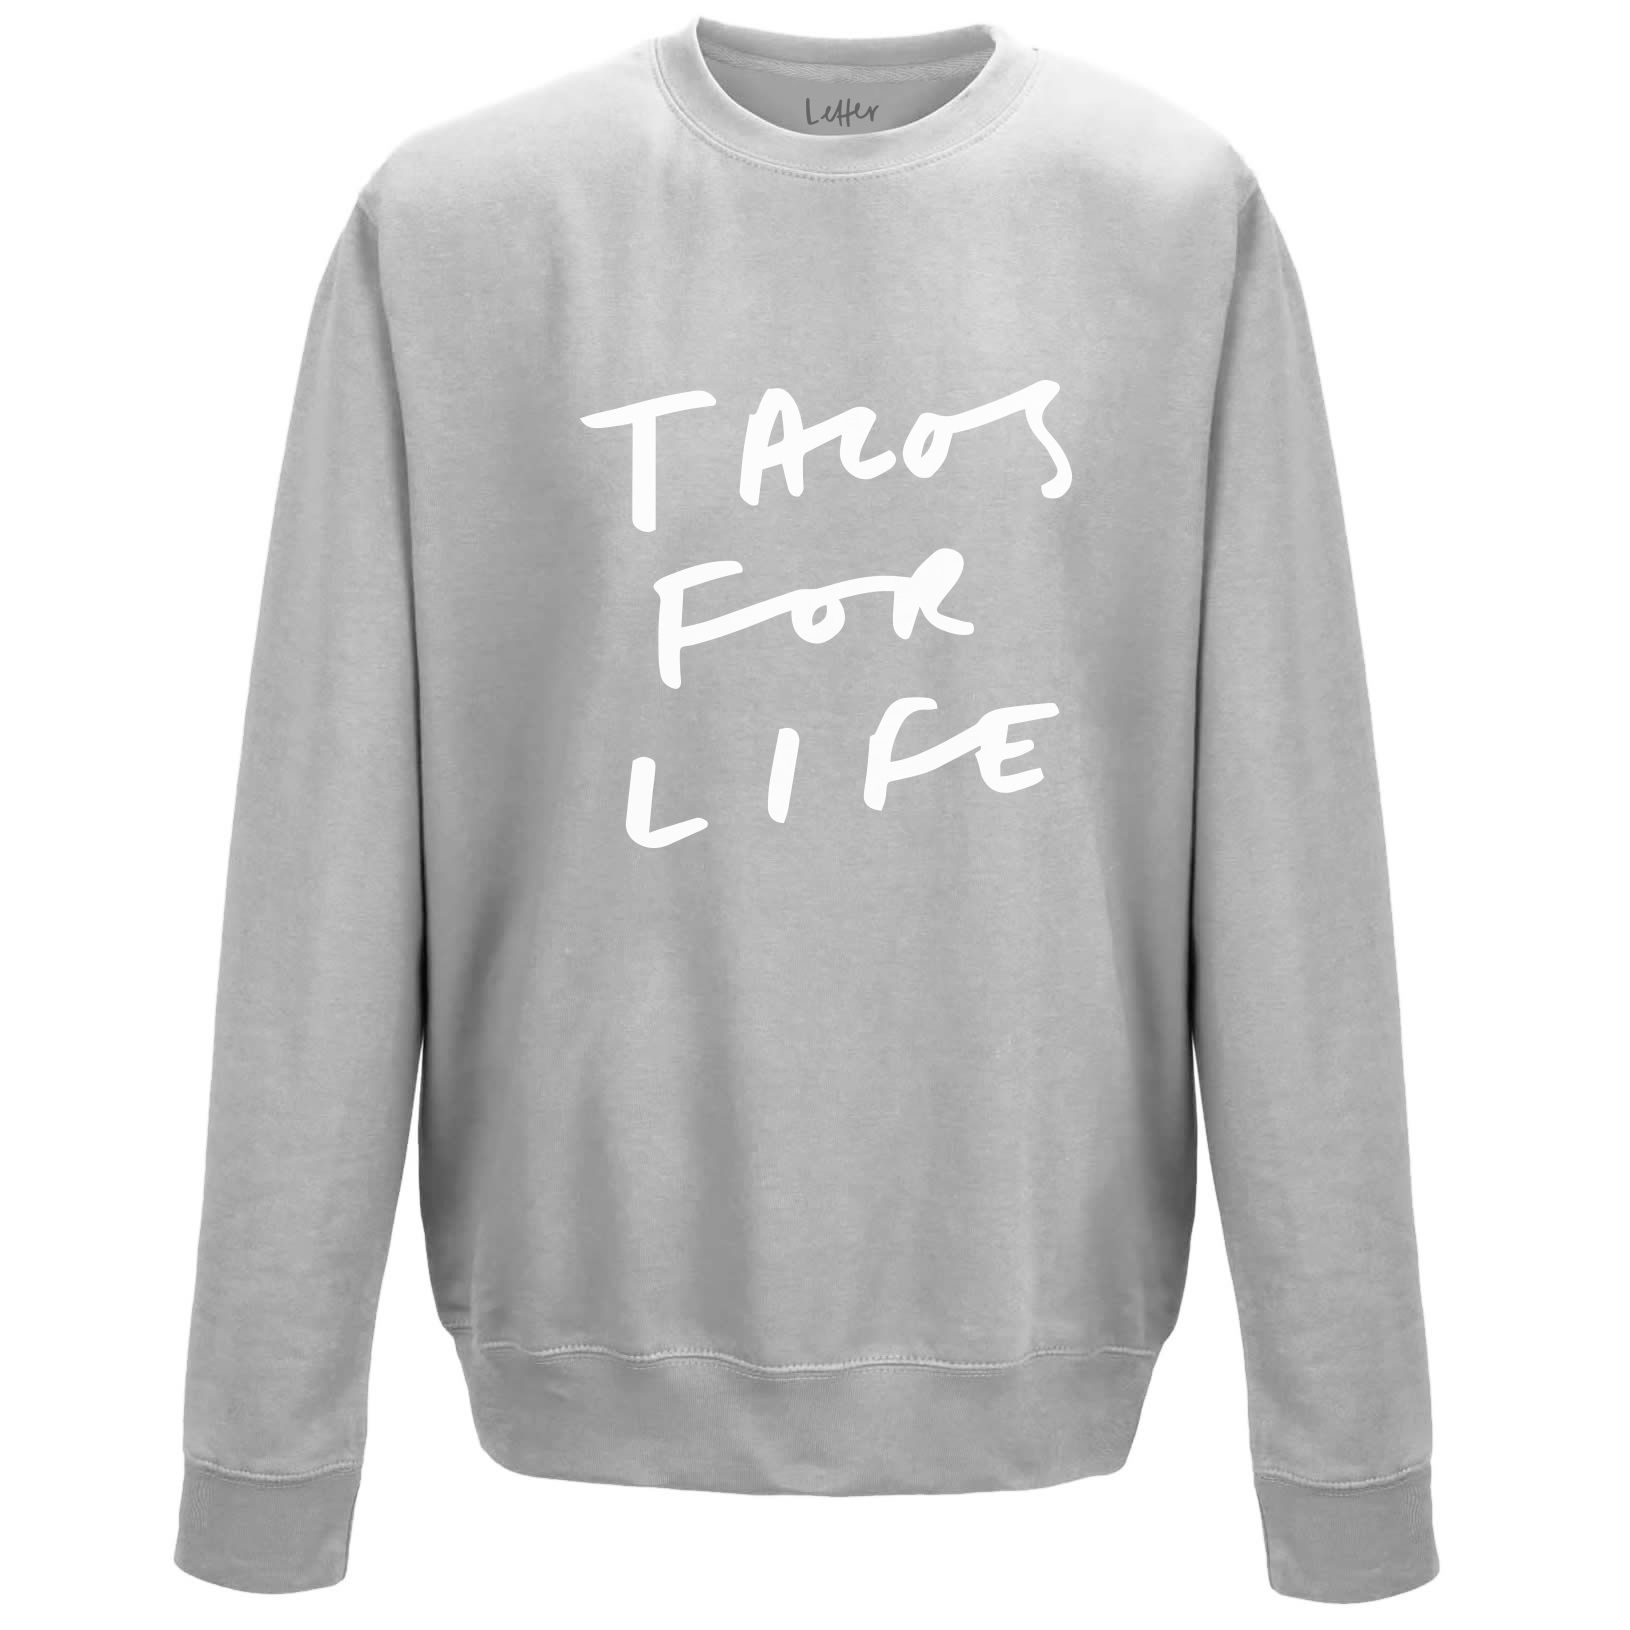 Tacos for life sweater!